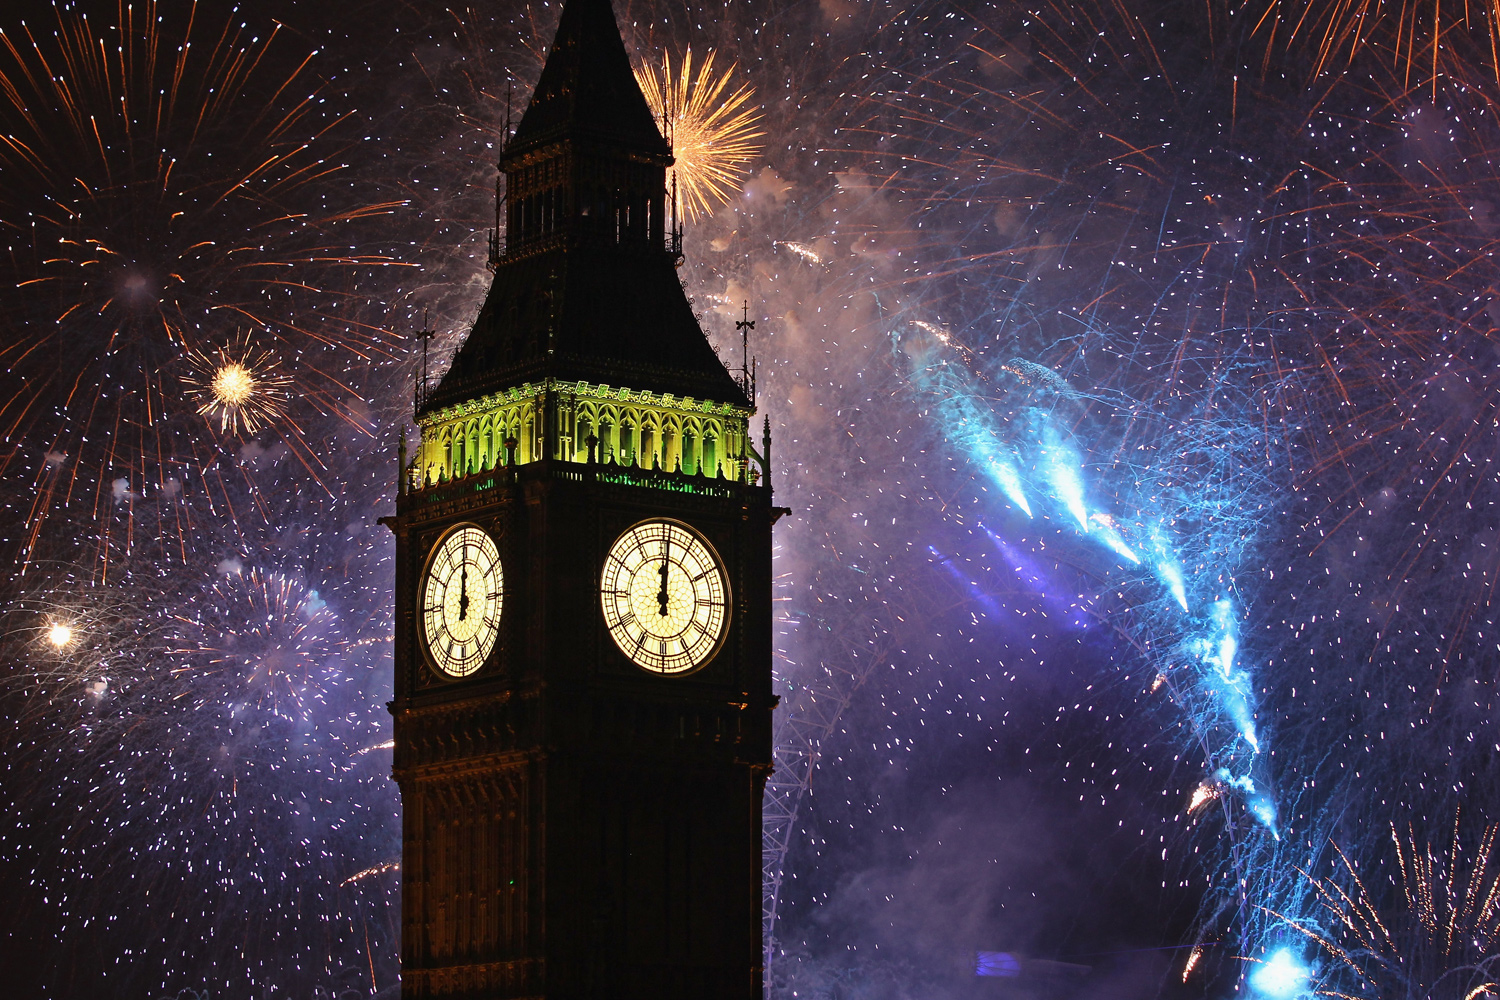 January 1, 2011. Fireworks light up the London skyline and Big Ben just after midnight in England. Thousands of people lined the banks of the River Thames in central London to see in the New Year with a spectacular fireworks display.